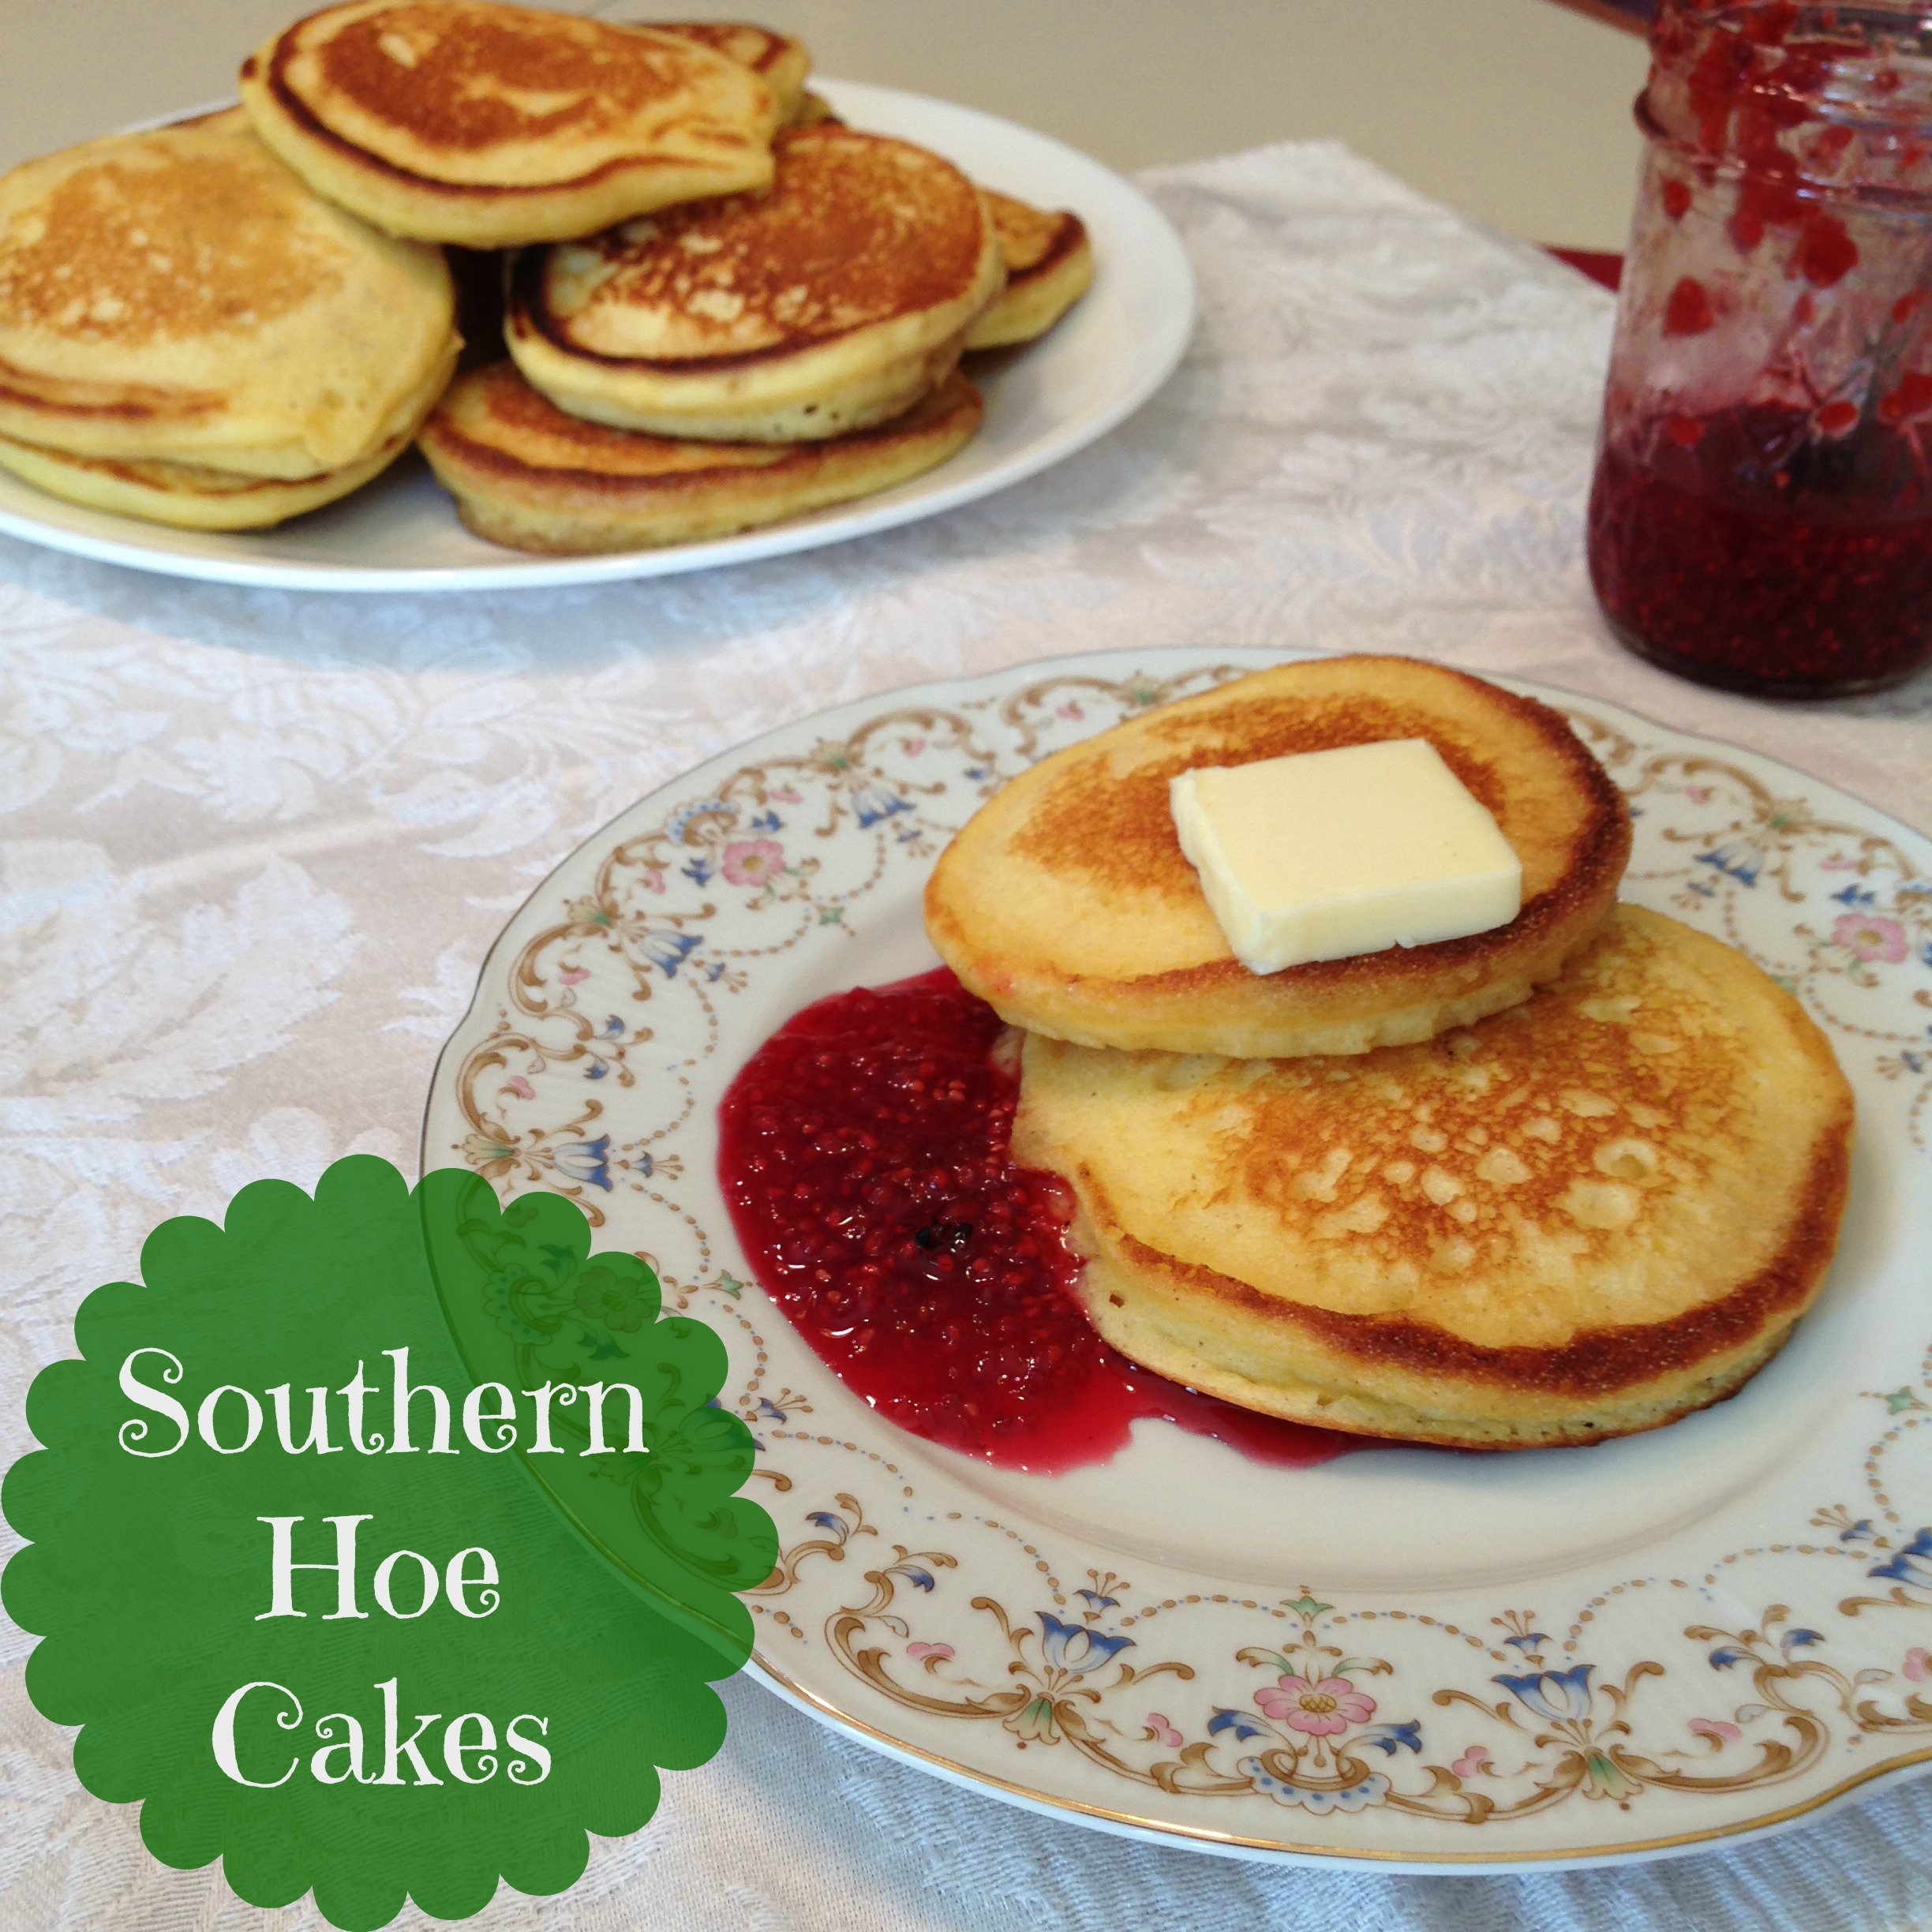 Southern Hoe Cakes